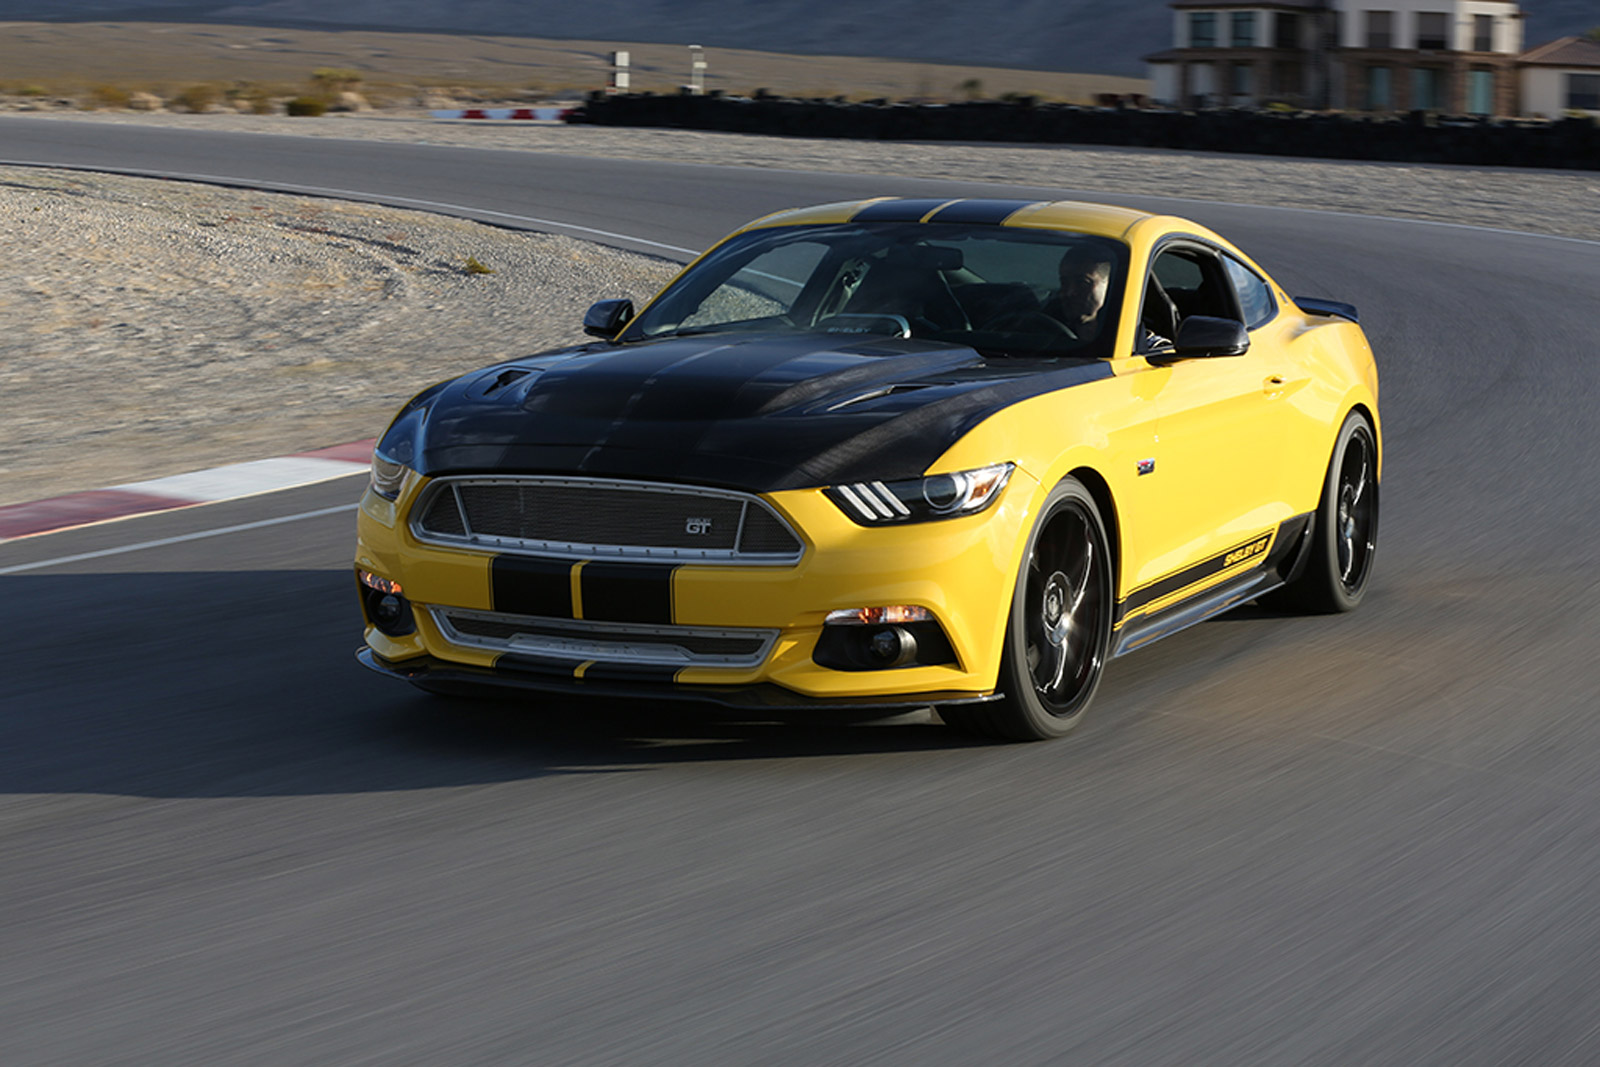 Safest Cars Of 2015, 2016 Lincoln MKX, 2015 Shelby GT